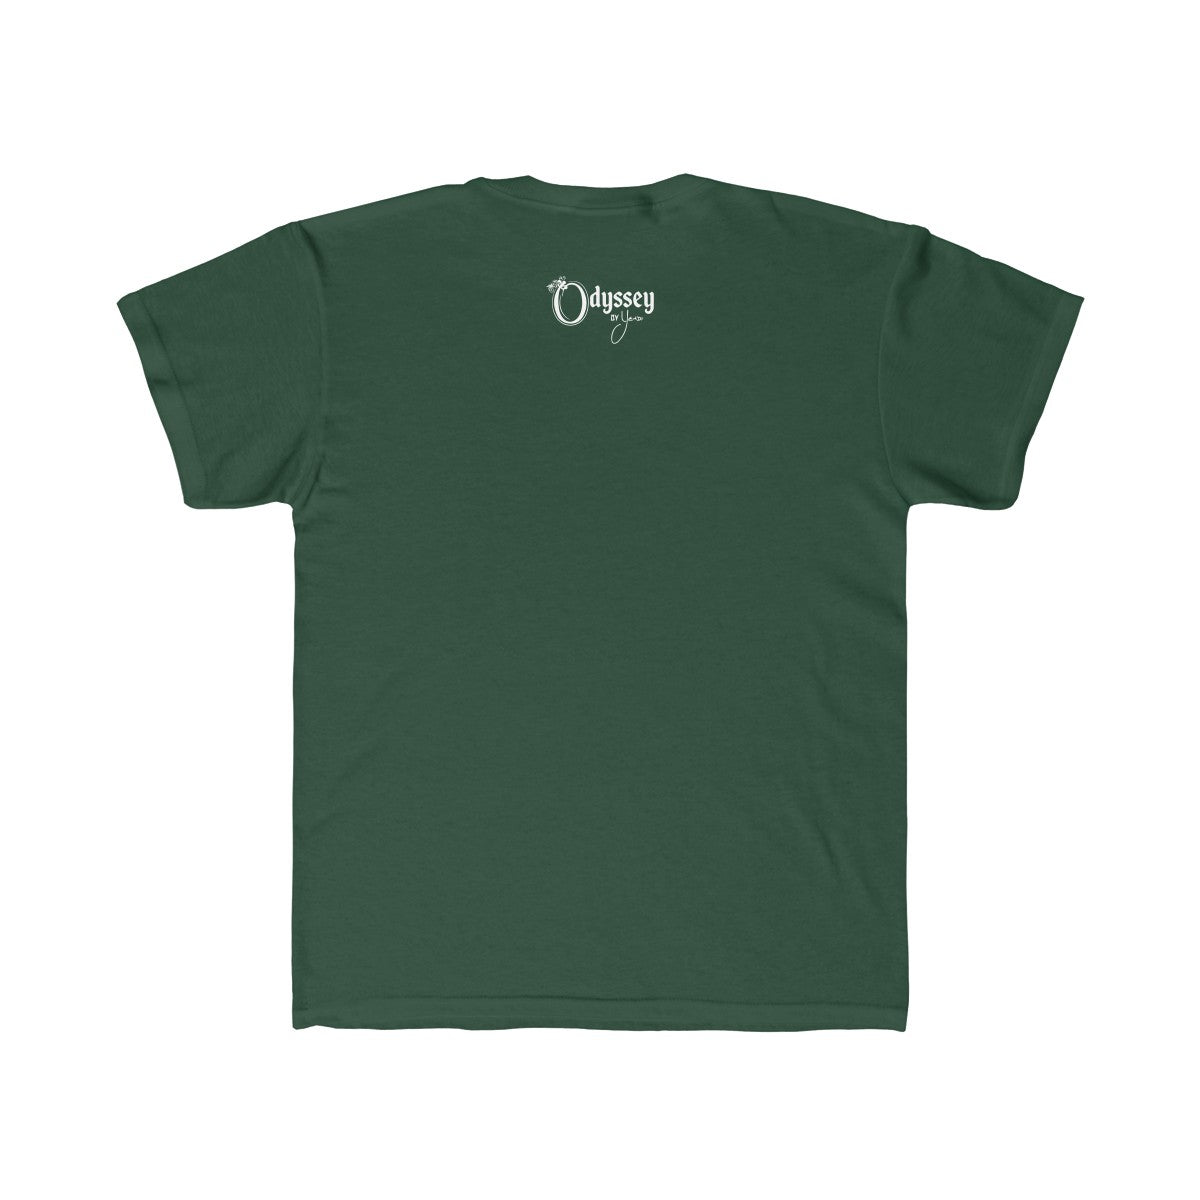 Odyssey Cross My Heart Kids Tee